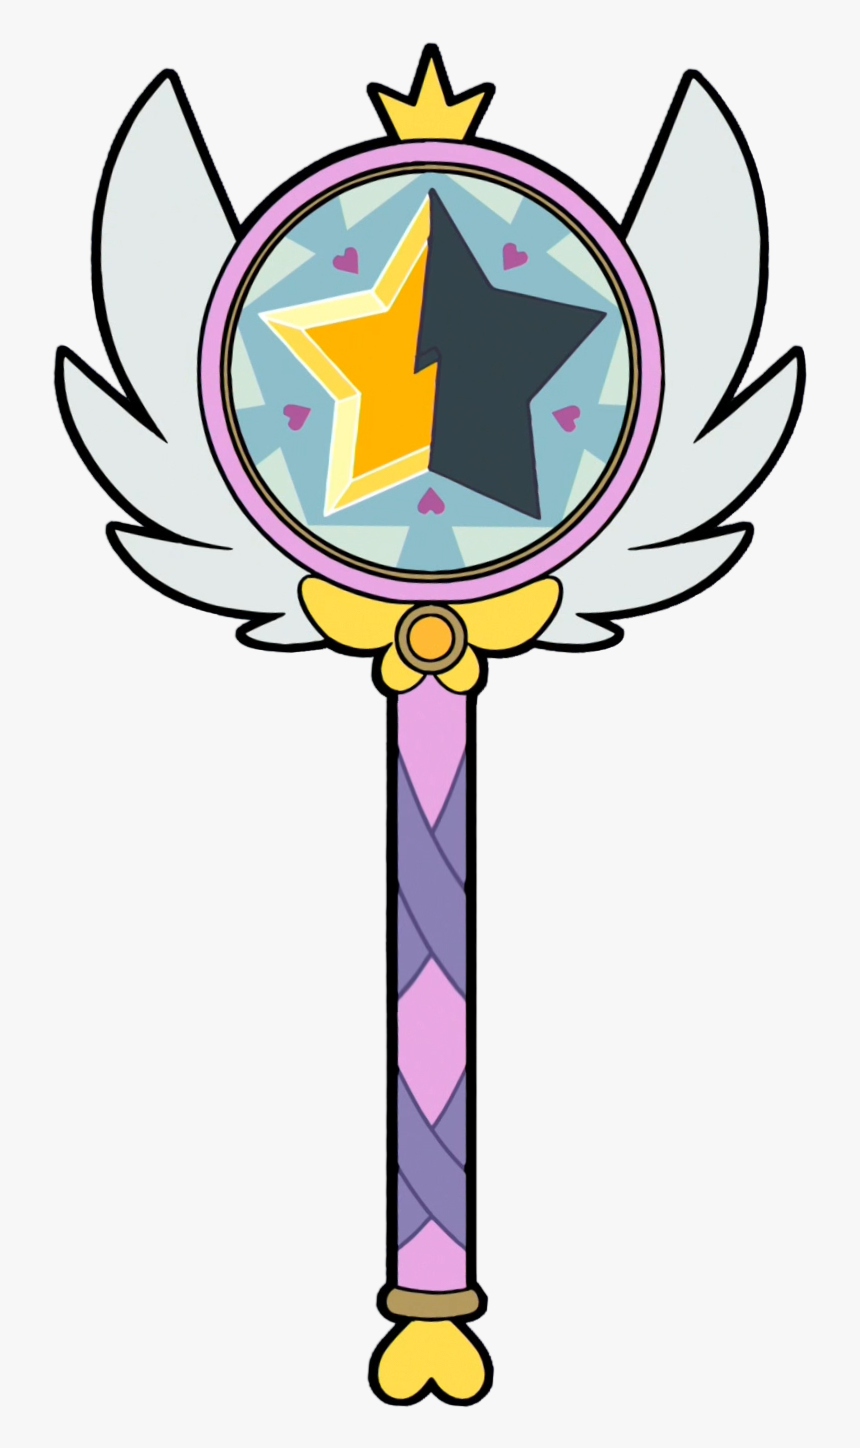 Season 2 Wand By Star-butterfly - Star Butterfly Wand 2, HD Png Download, Free Download